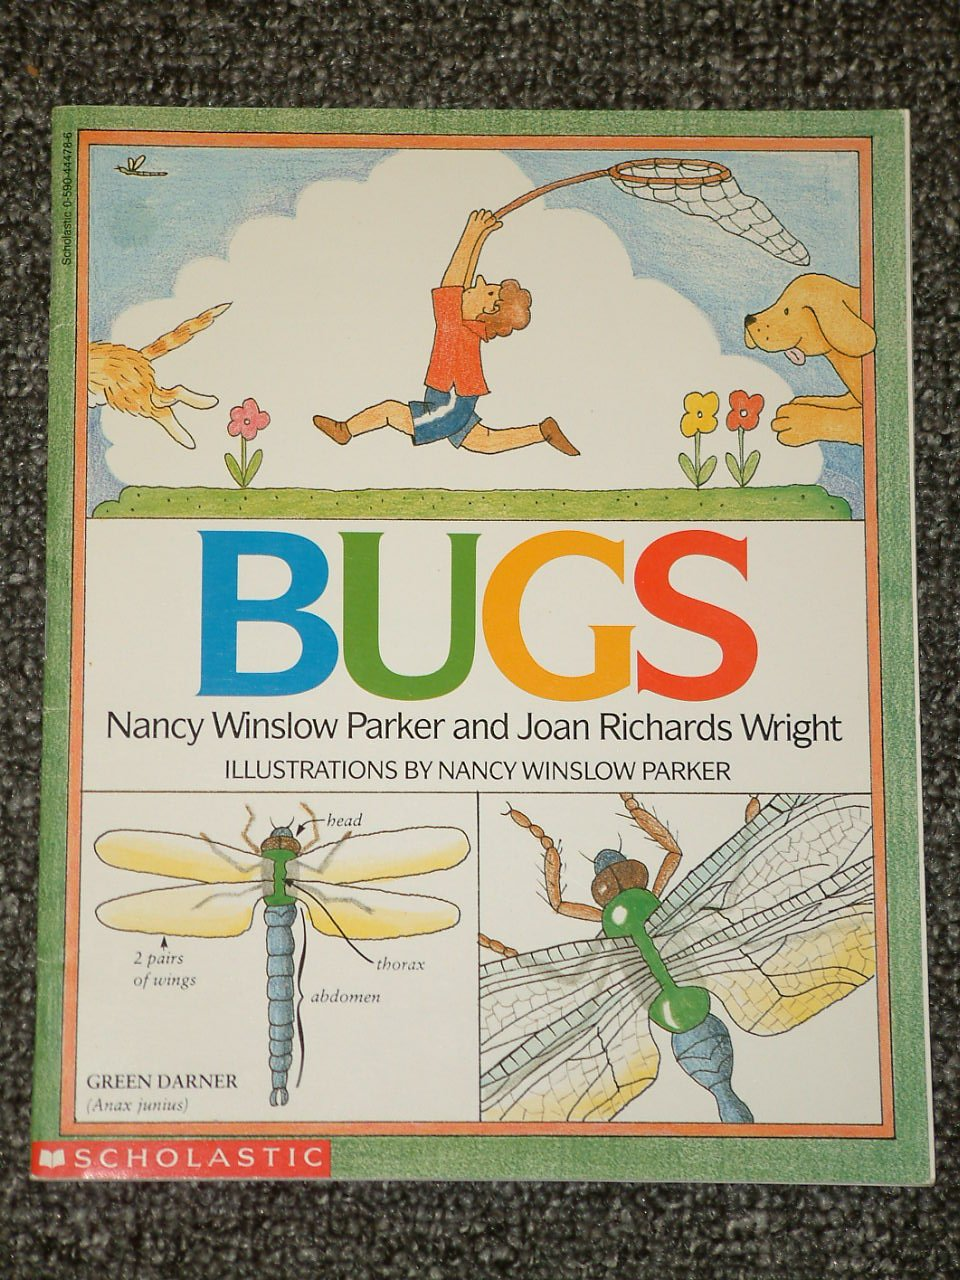 Bugs by Nancy Winslow Parker and Joan Richards Wright